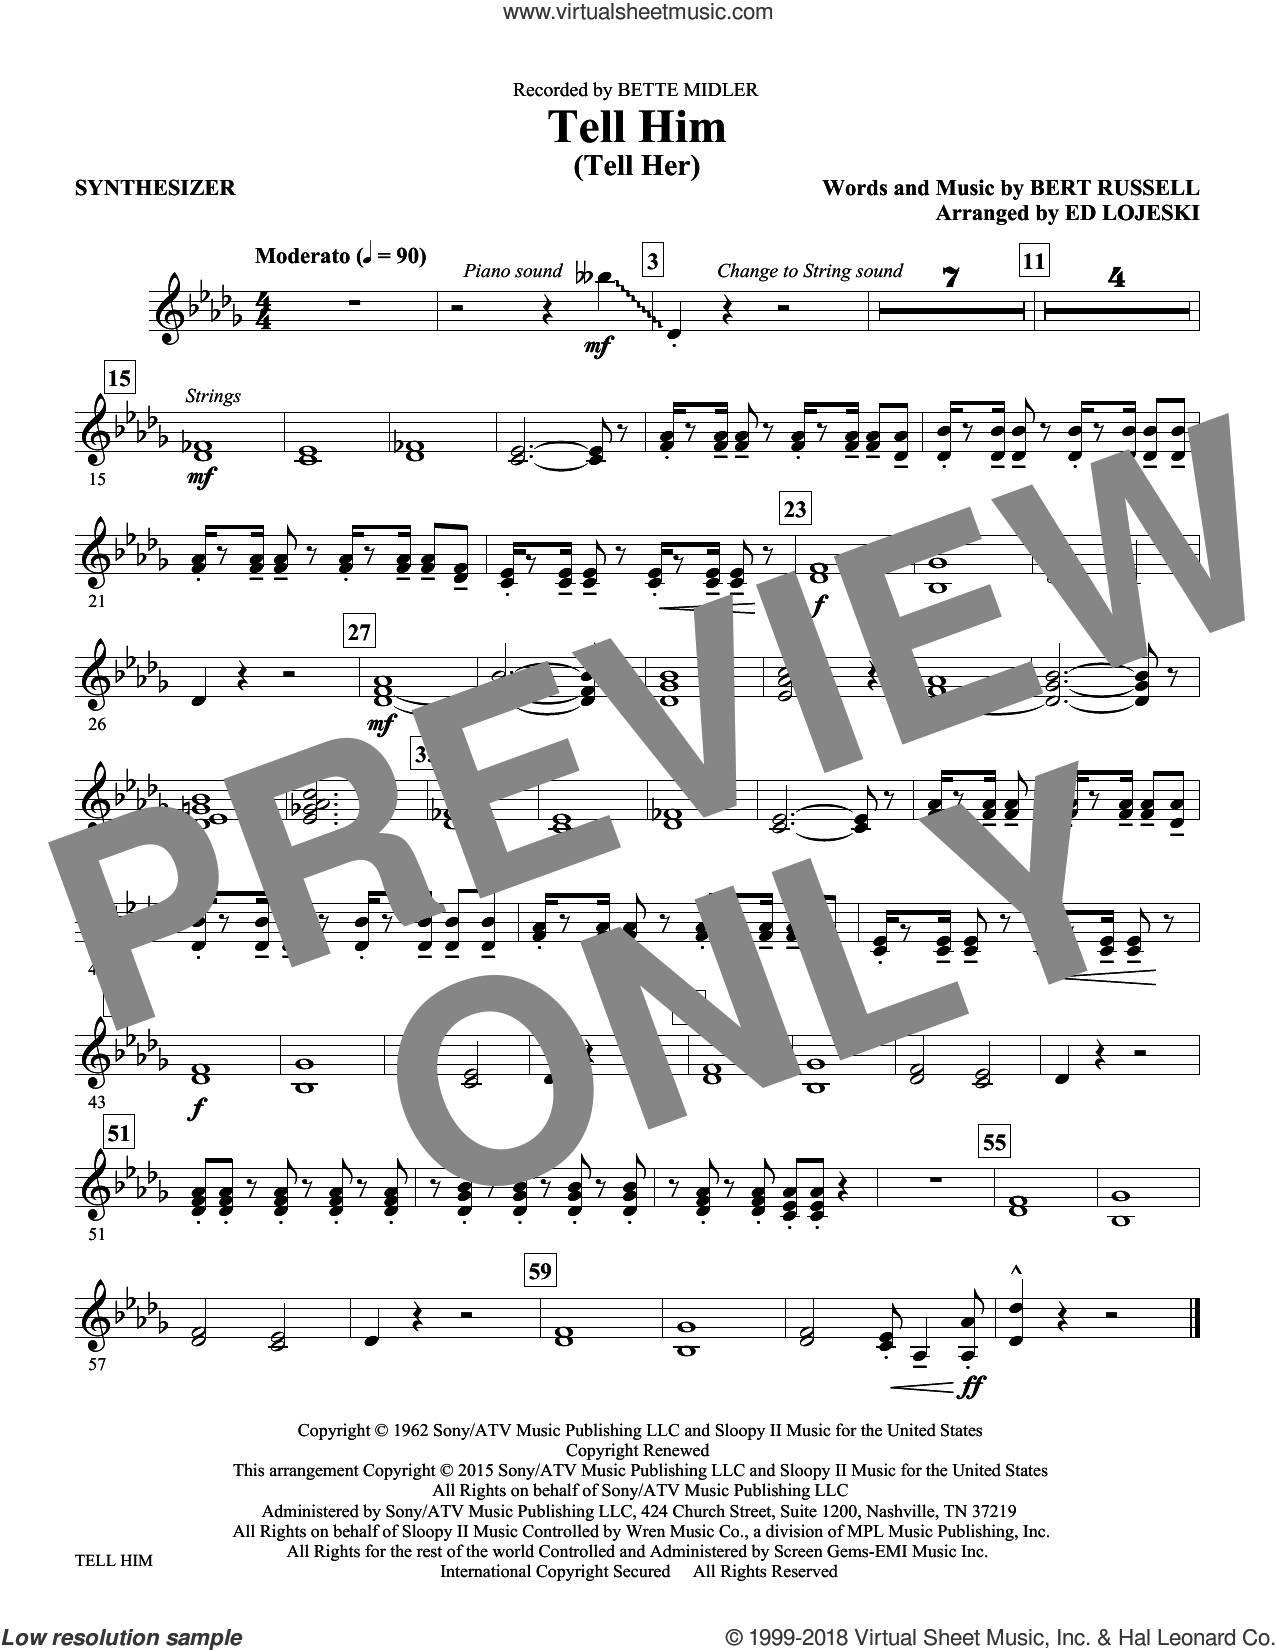 Tell Him (Tell Her) sheet music for orchestra/band (synthesizer) by Bert Russell and Ed Lojeski. Score Image Preview.